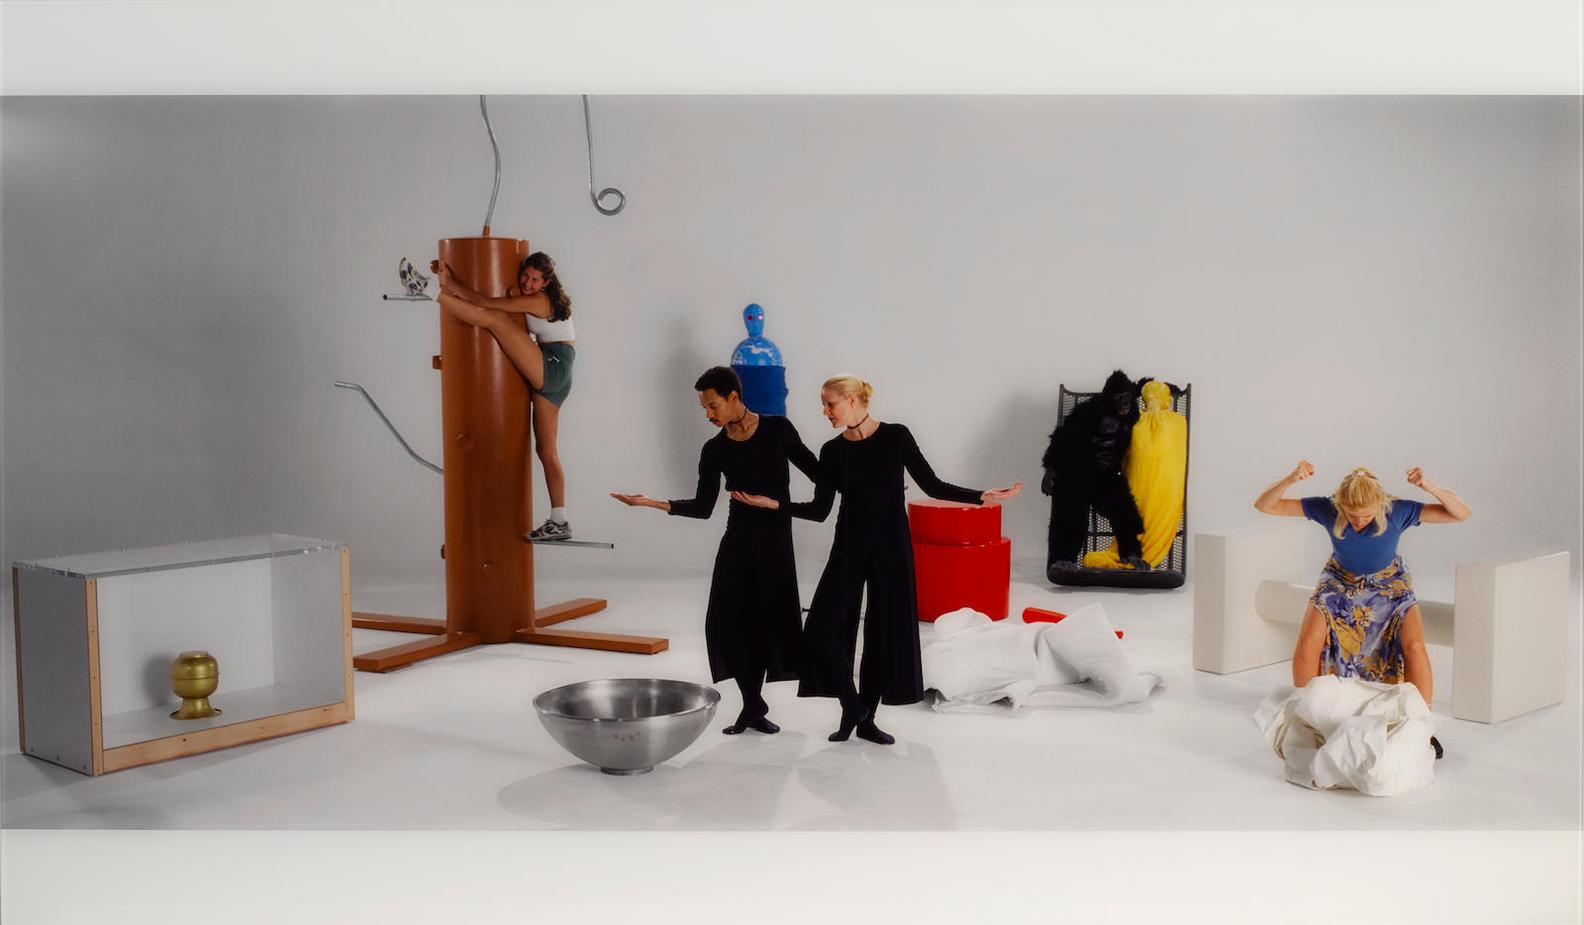 Mike Kelley-Test Room Containing Multiple Stimuli Known To Elicit Curiosity And Manipulatory Responses (Full Cast) [2]-2001